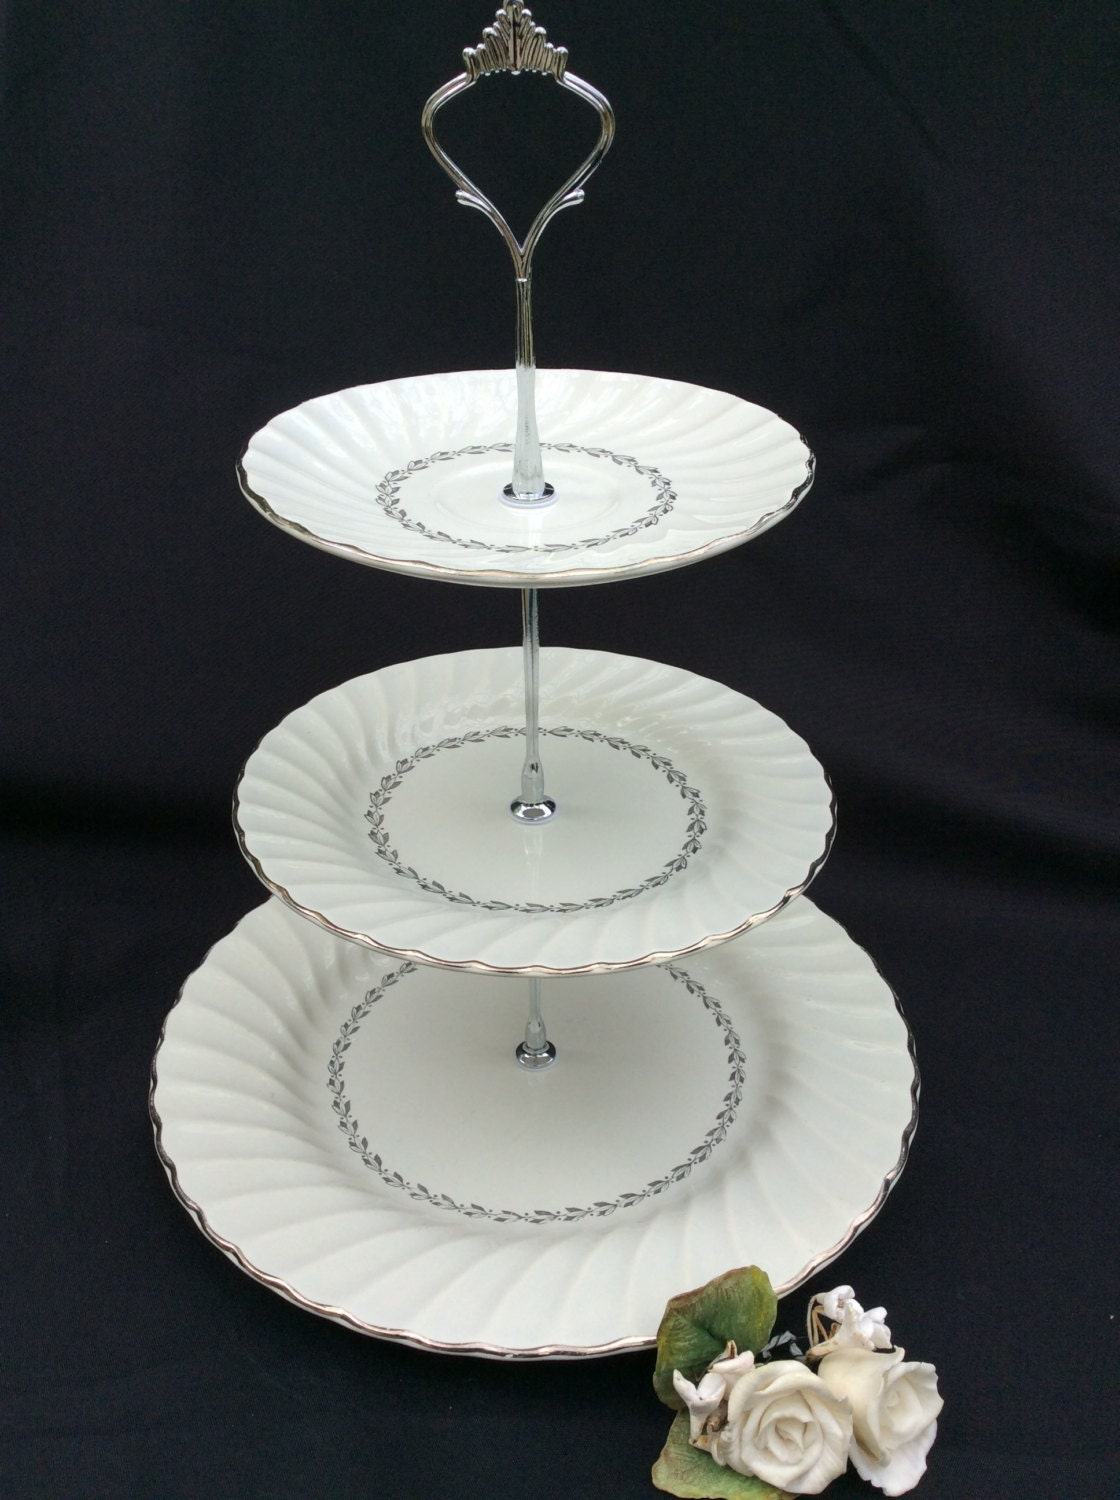 Cake Stand Wedding Cake Stand Silver Plate 3 Tier Cake